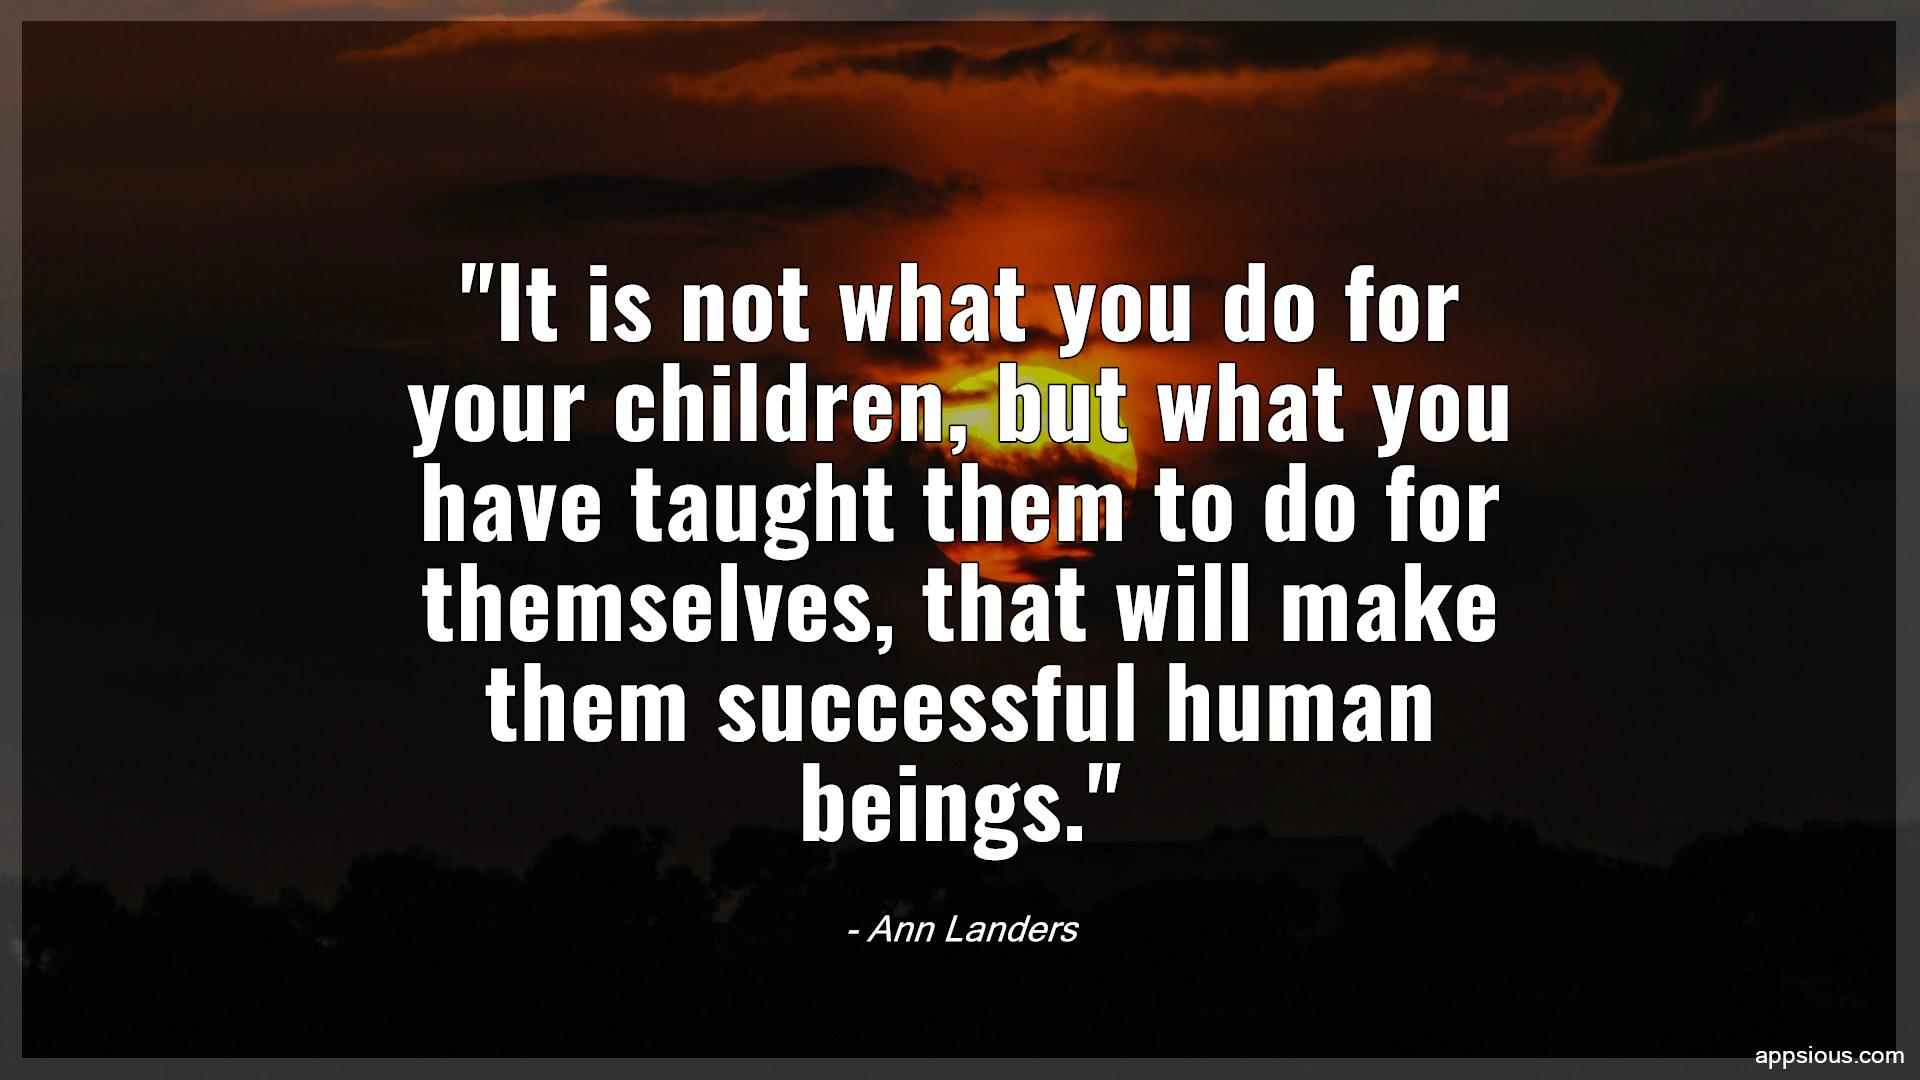 It is not what you do for your children, but what you have taught them to do for themselves, that will make them successful human beings.